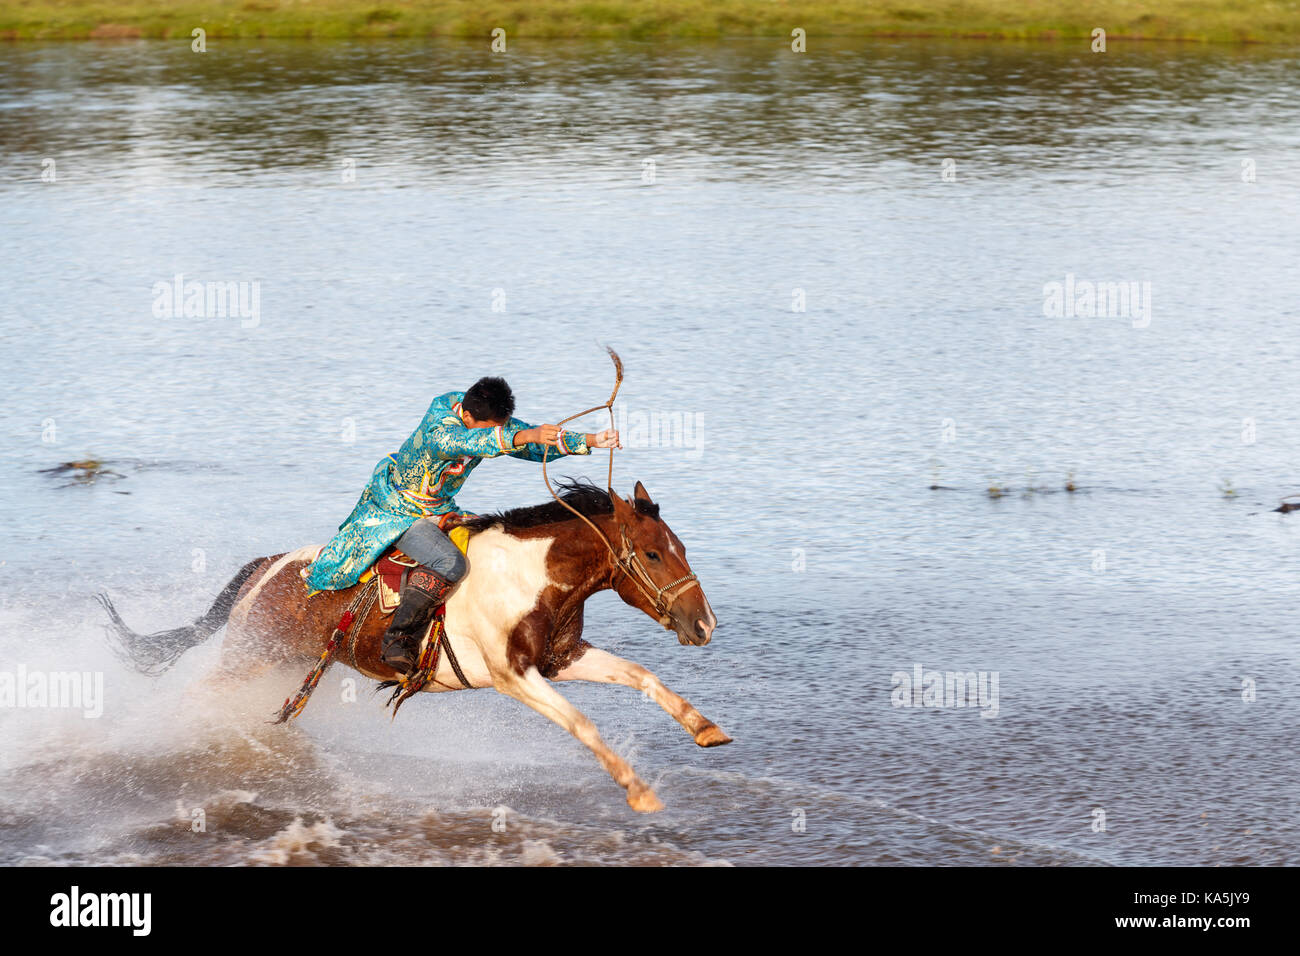 Young Mongolian horseman rides at full gallop on the river - Stock Image